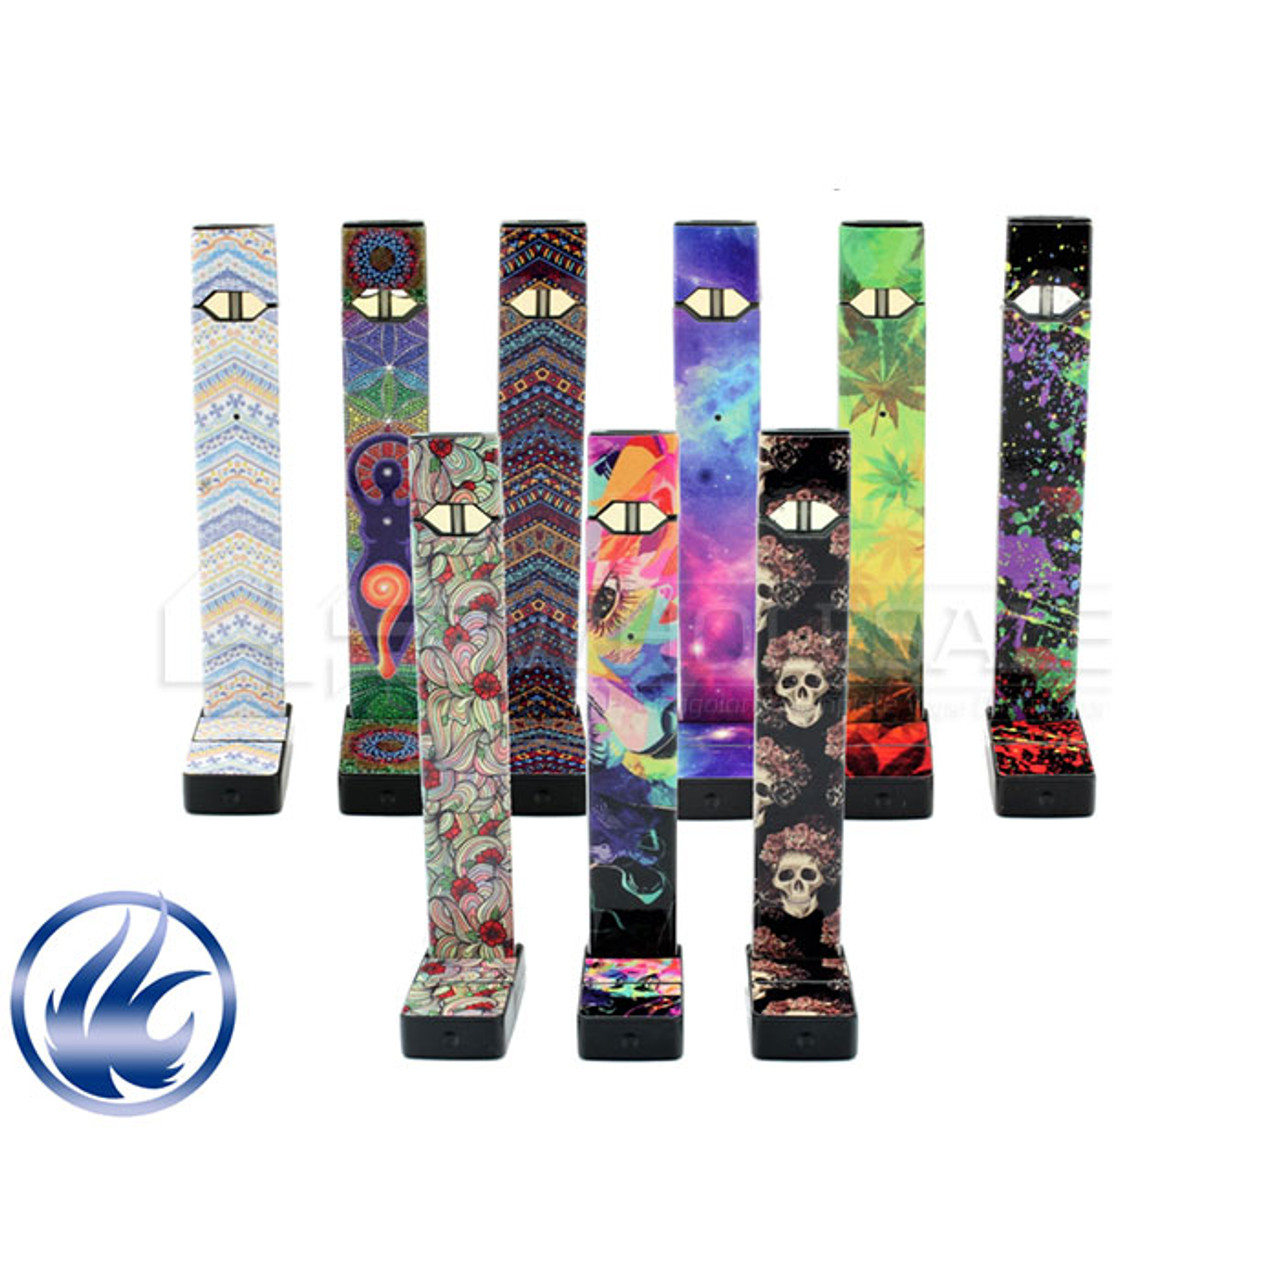 juul wraps by vape central group pack of 5 pod based systems hs